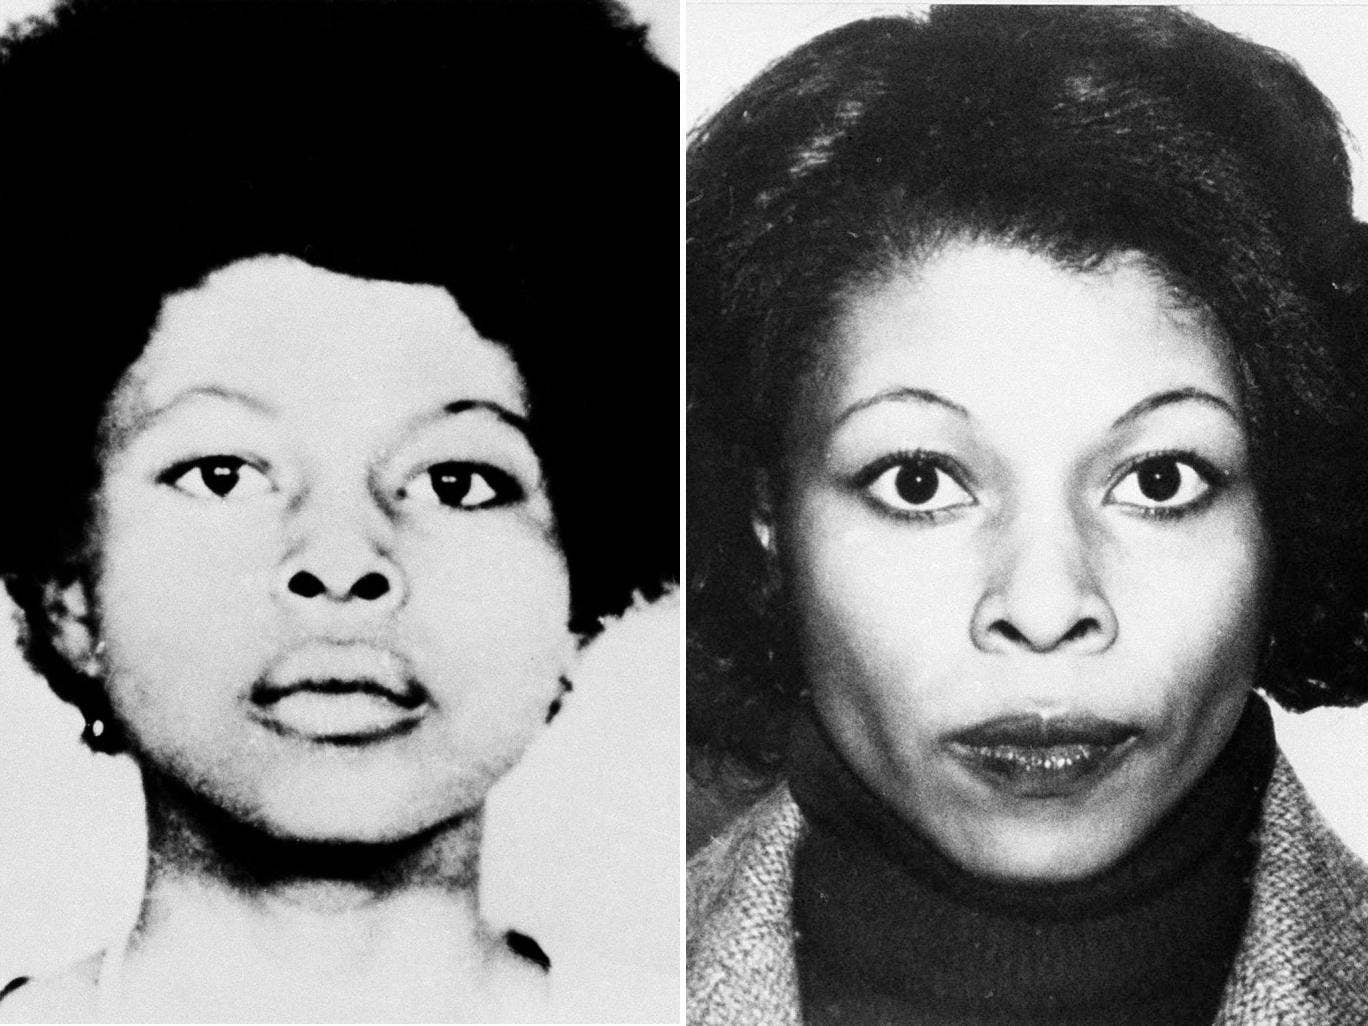 FBI photos depict various appearances of the convicted murderer JoAnne Chesimard